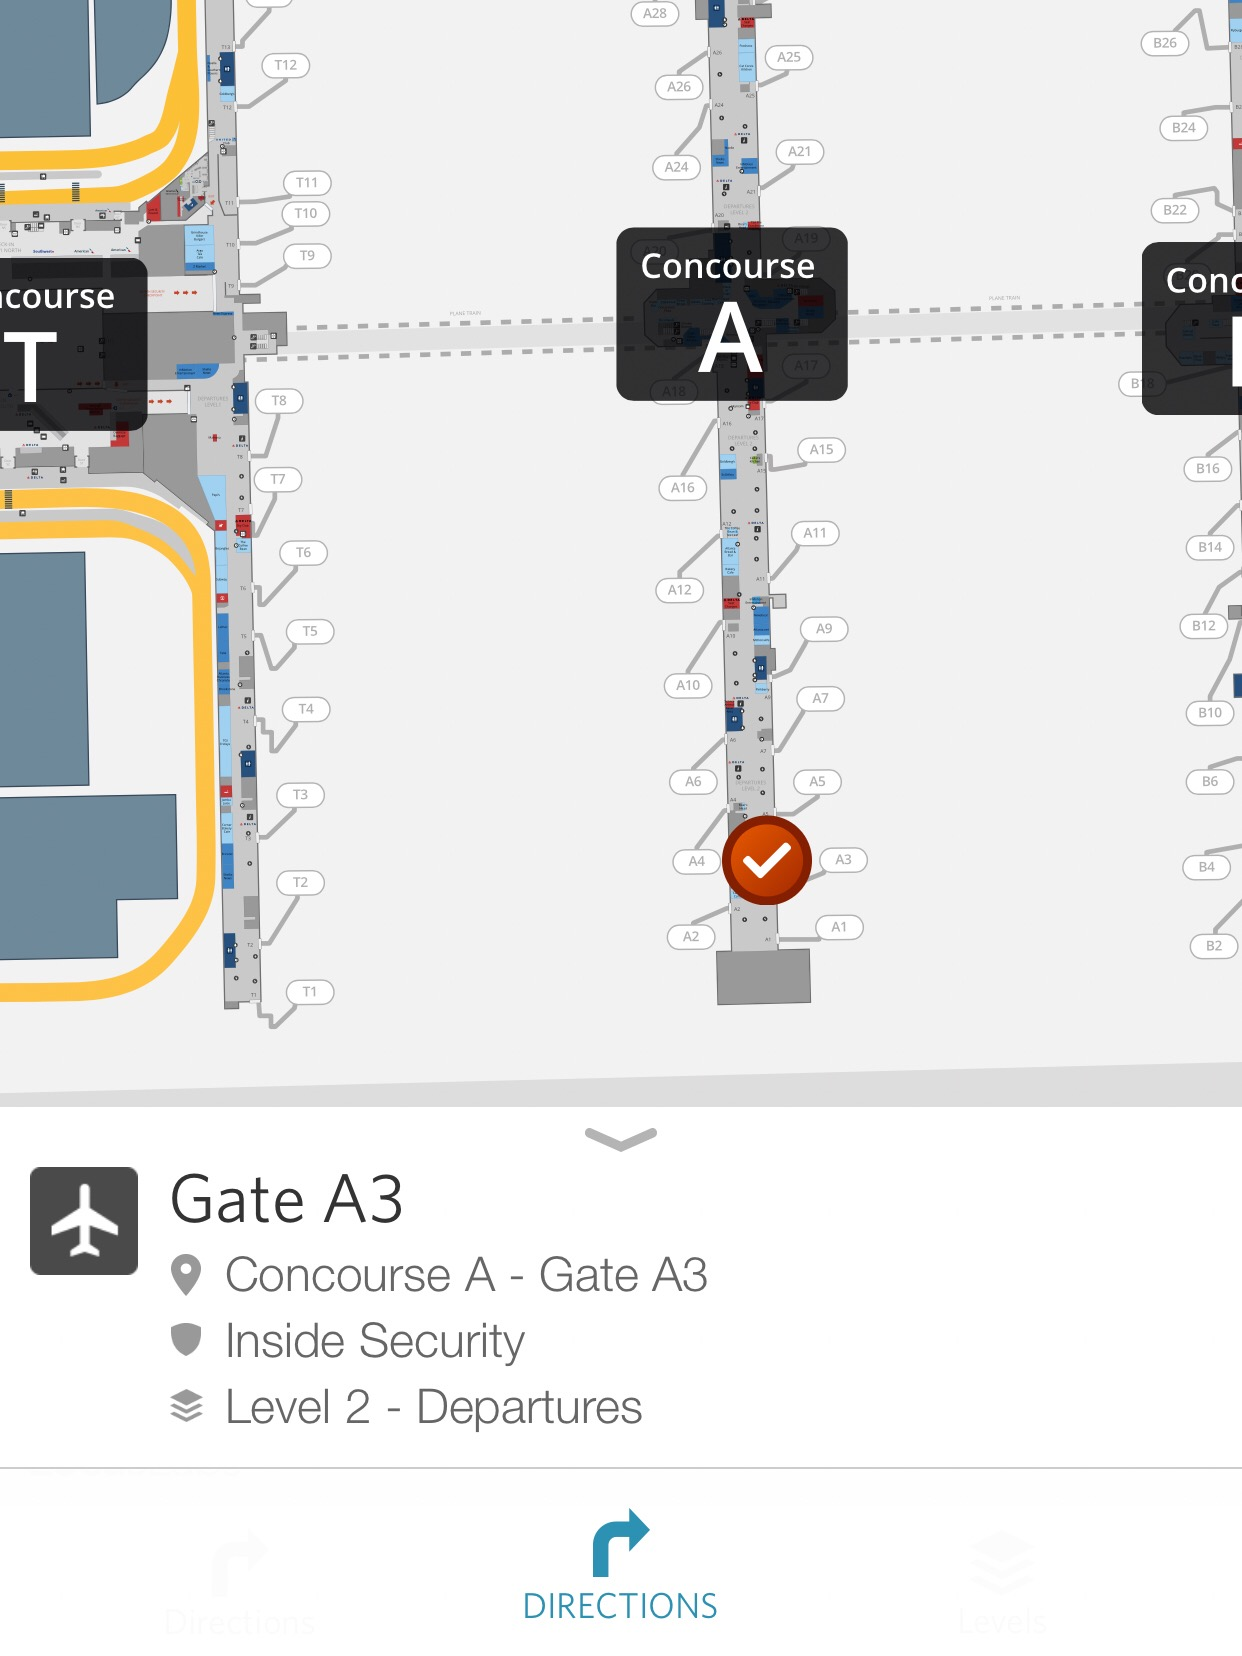 Delta's app will give you directions to your next gate if you are connecting.